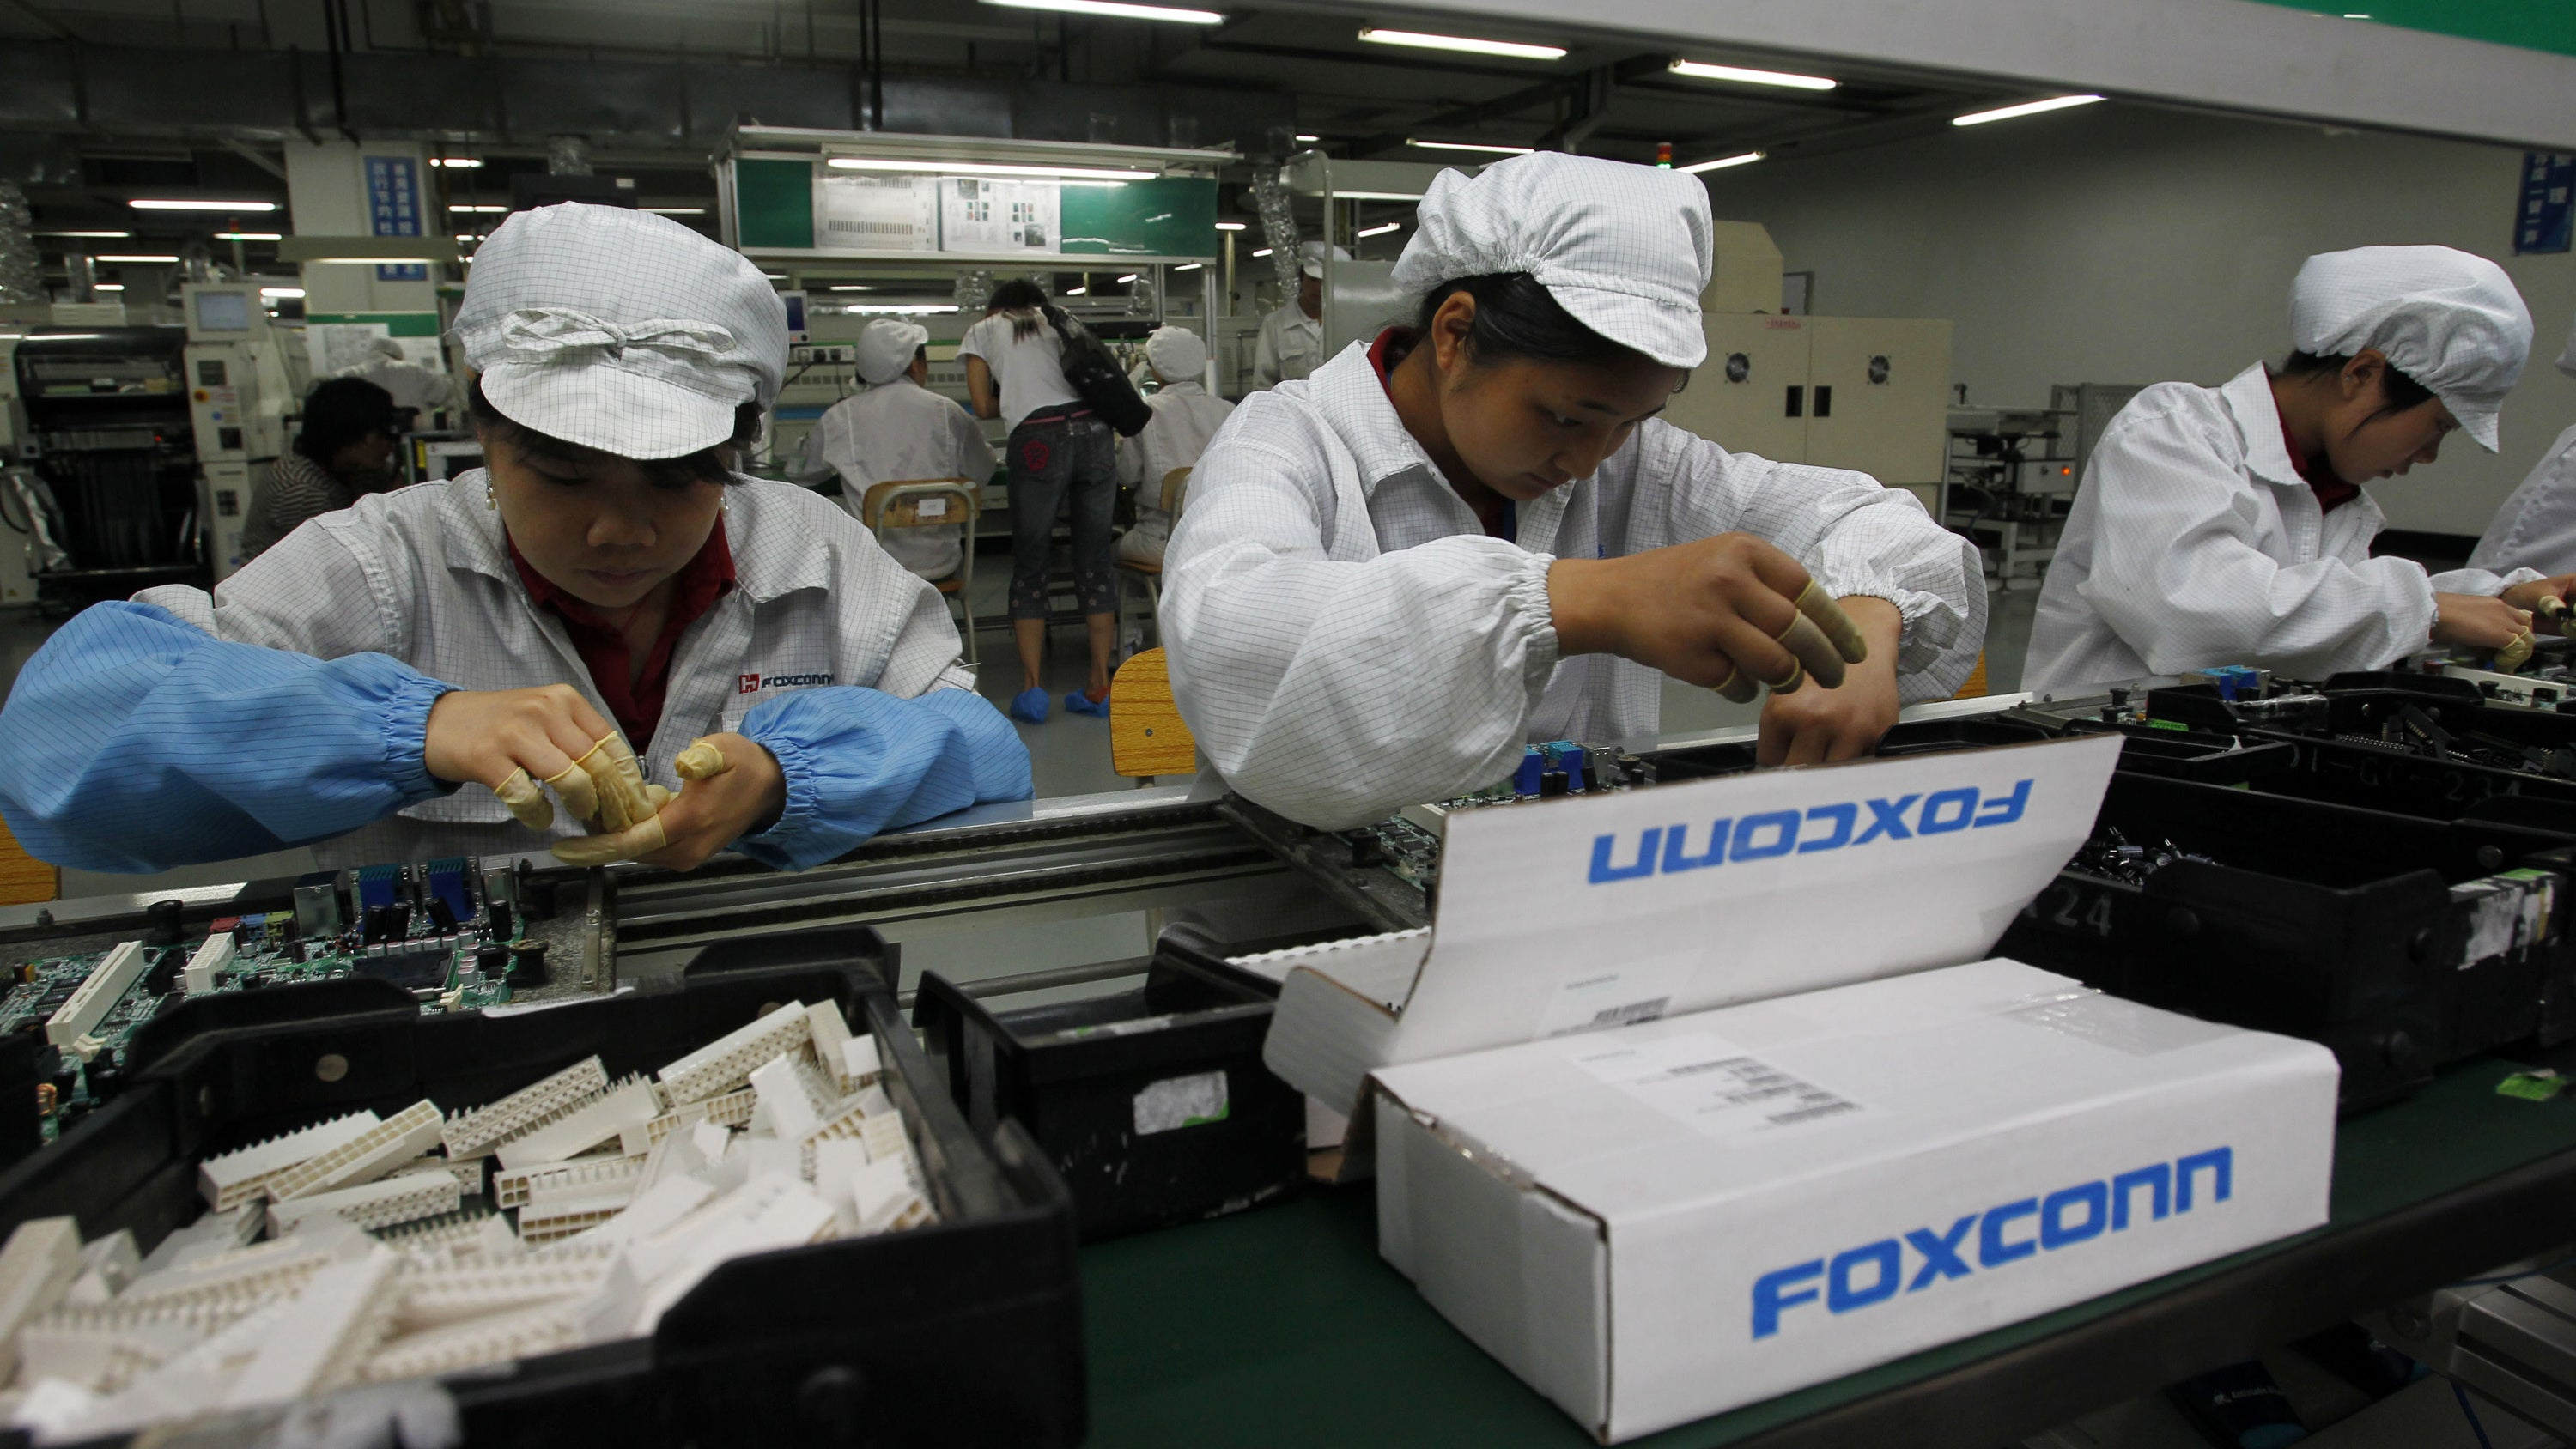 Interns Said To Work Illegal Hours On The iPhone X Assembly Line